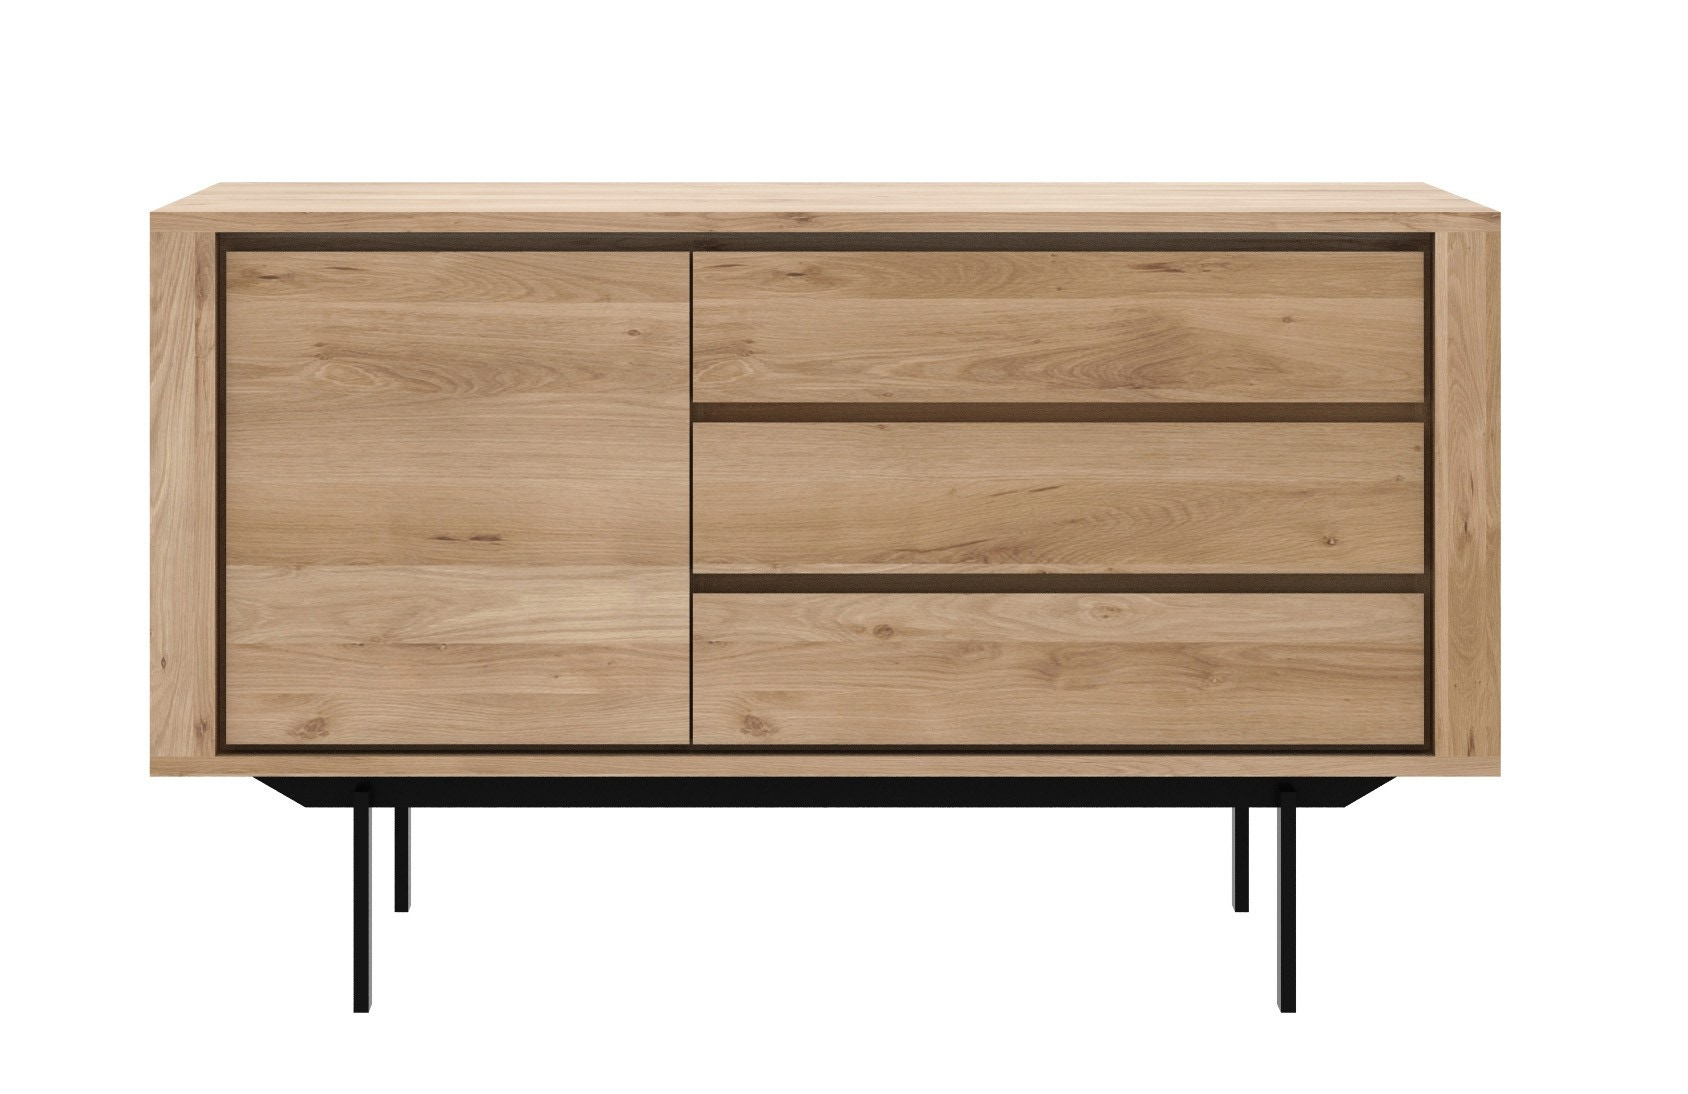 Ethnicraft Oak Shadow Sideboard with Black Metal Legs